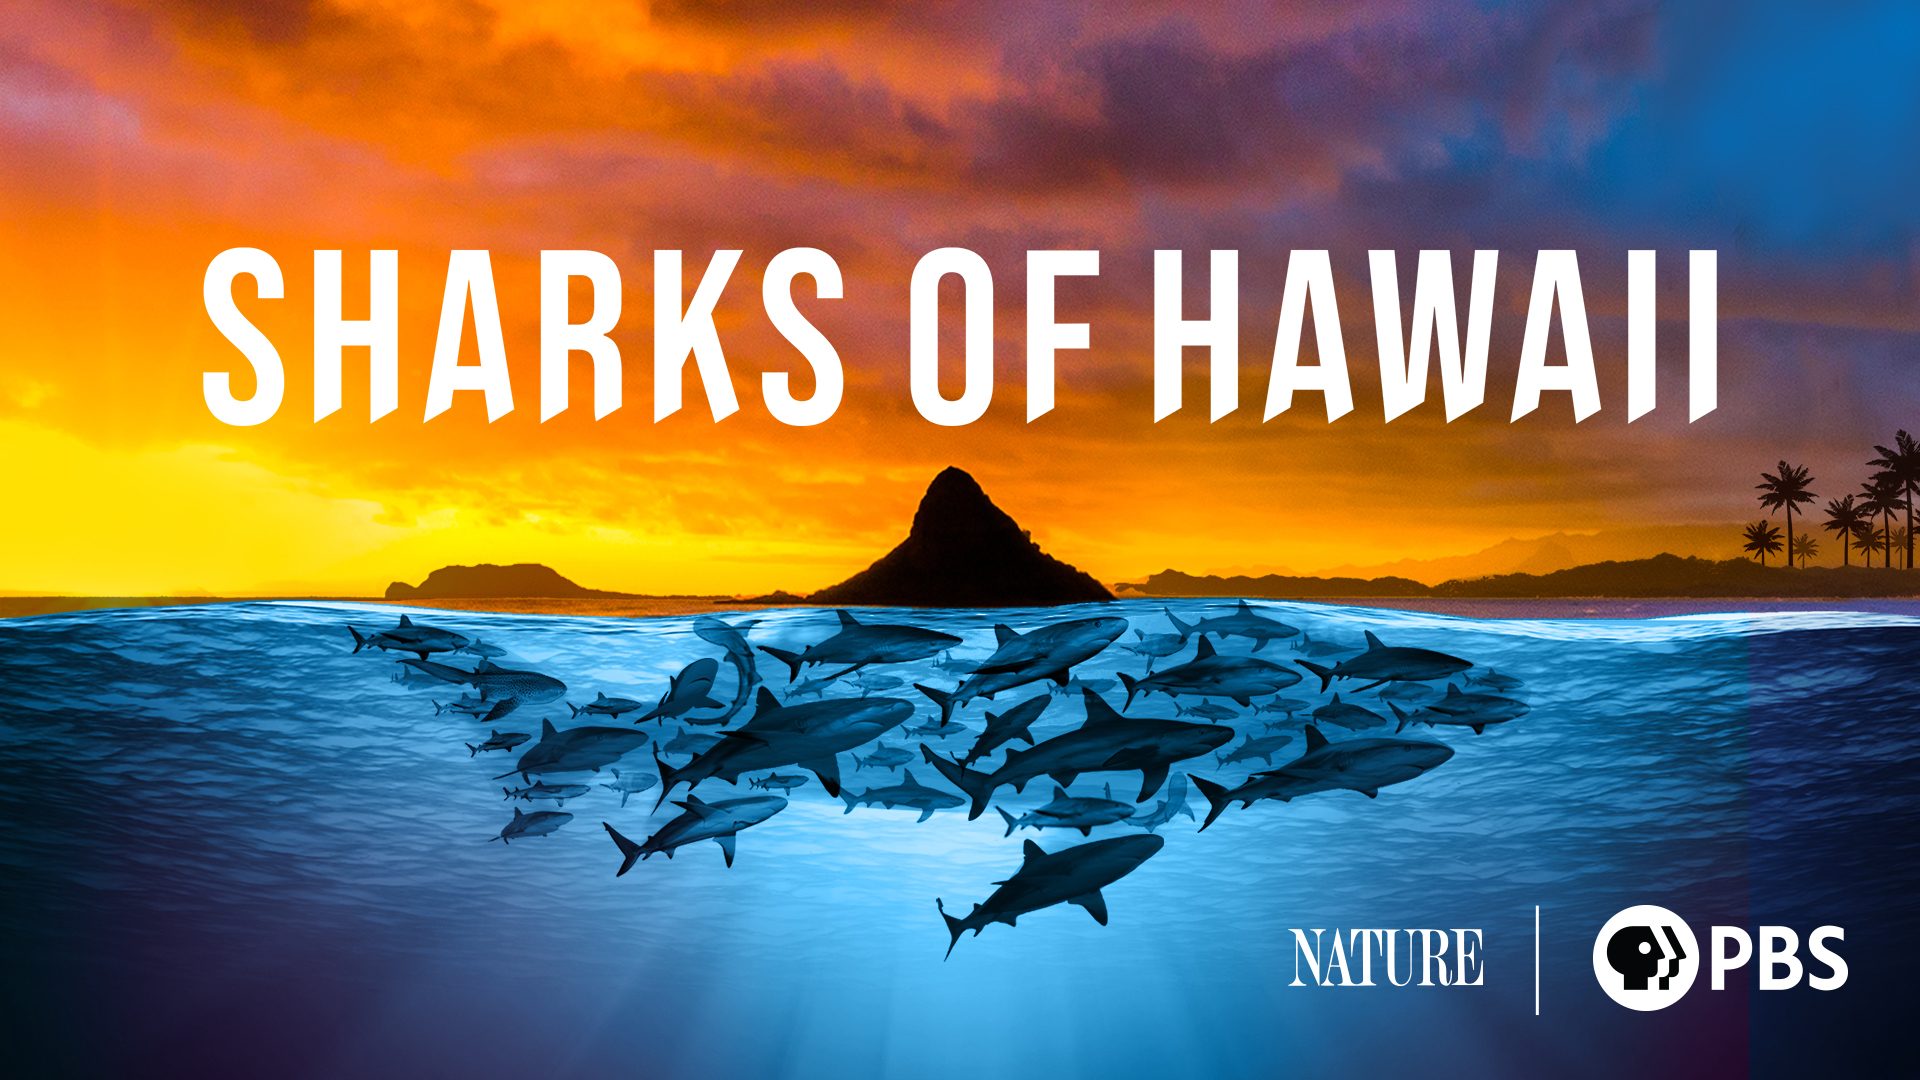 Sharks of Hawaii